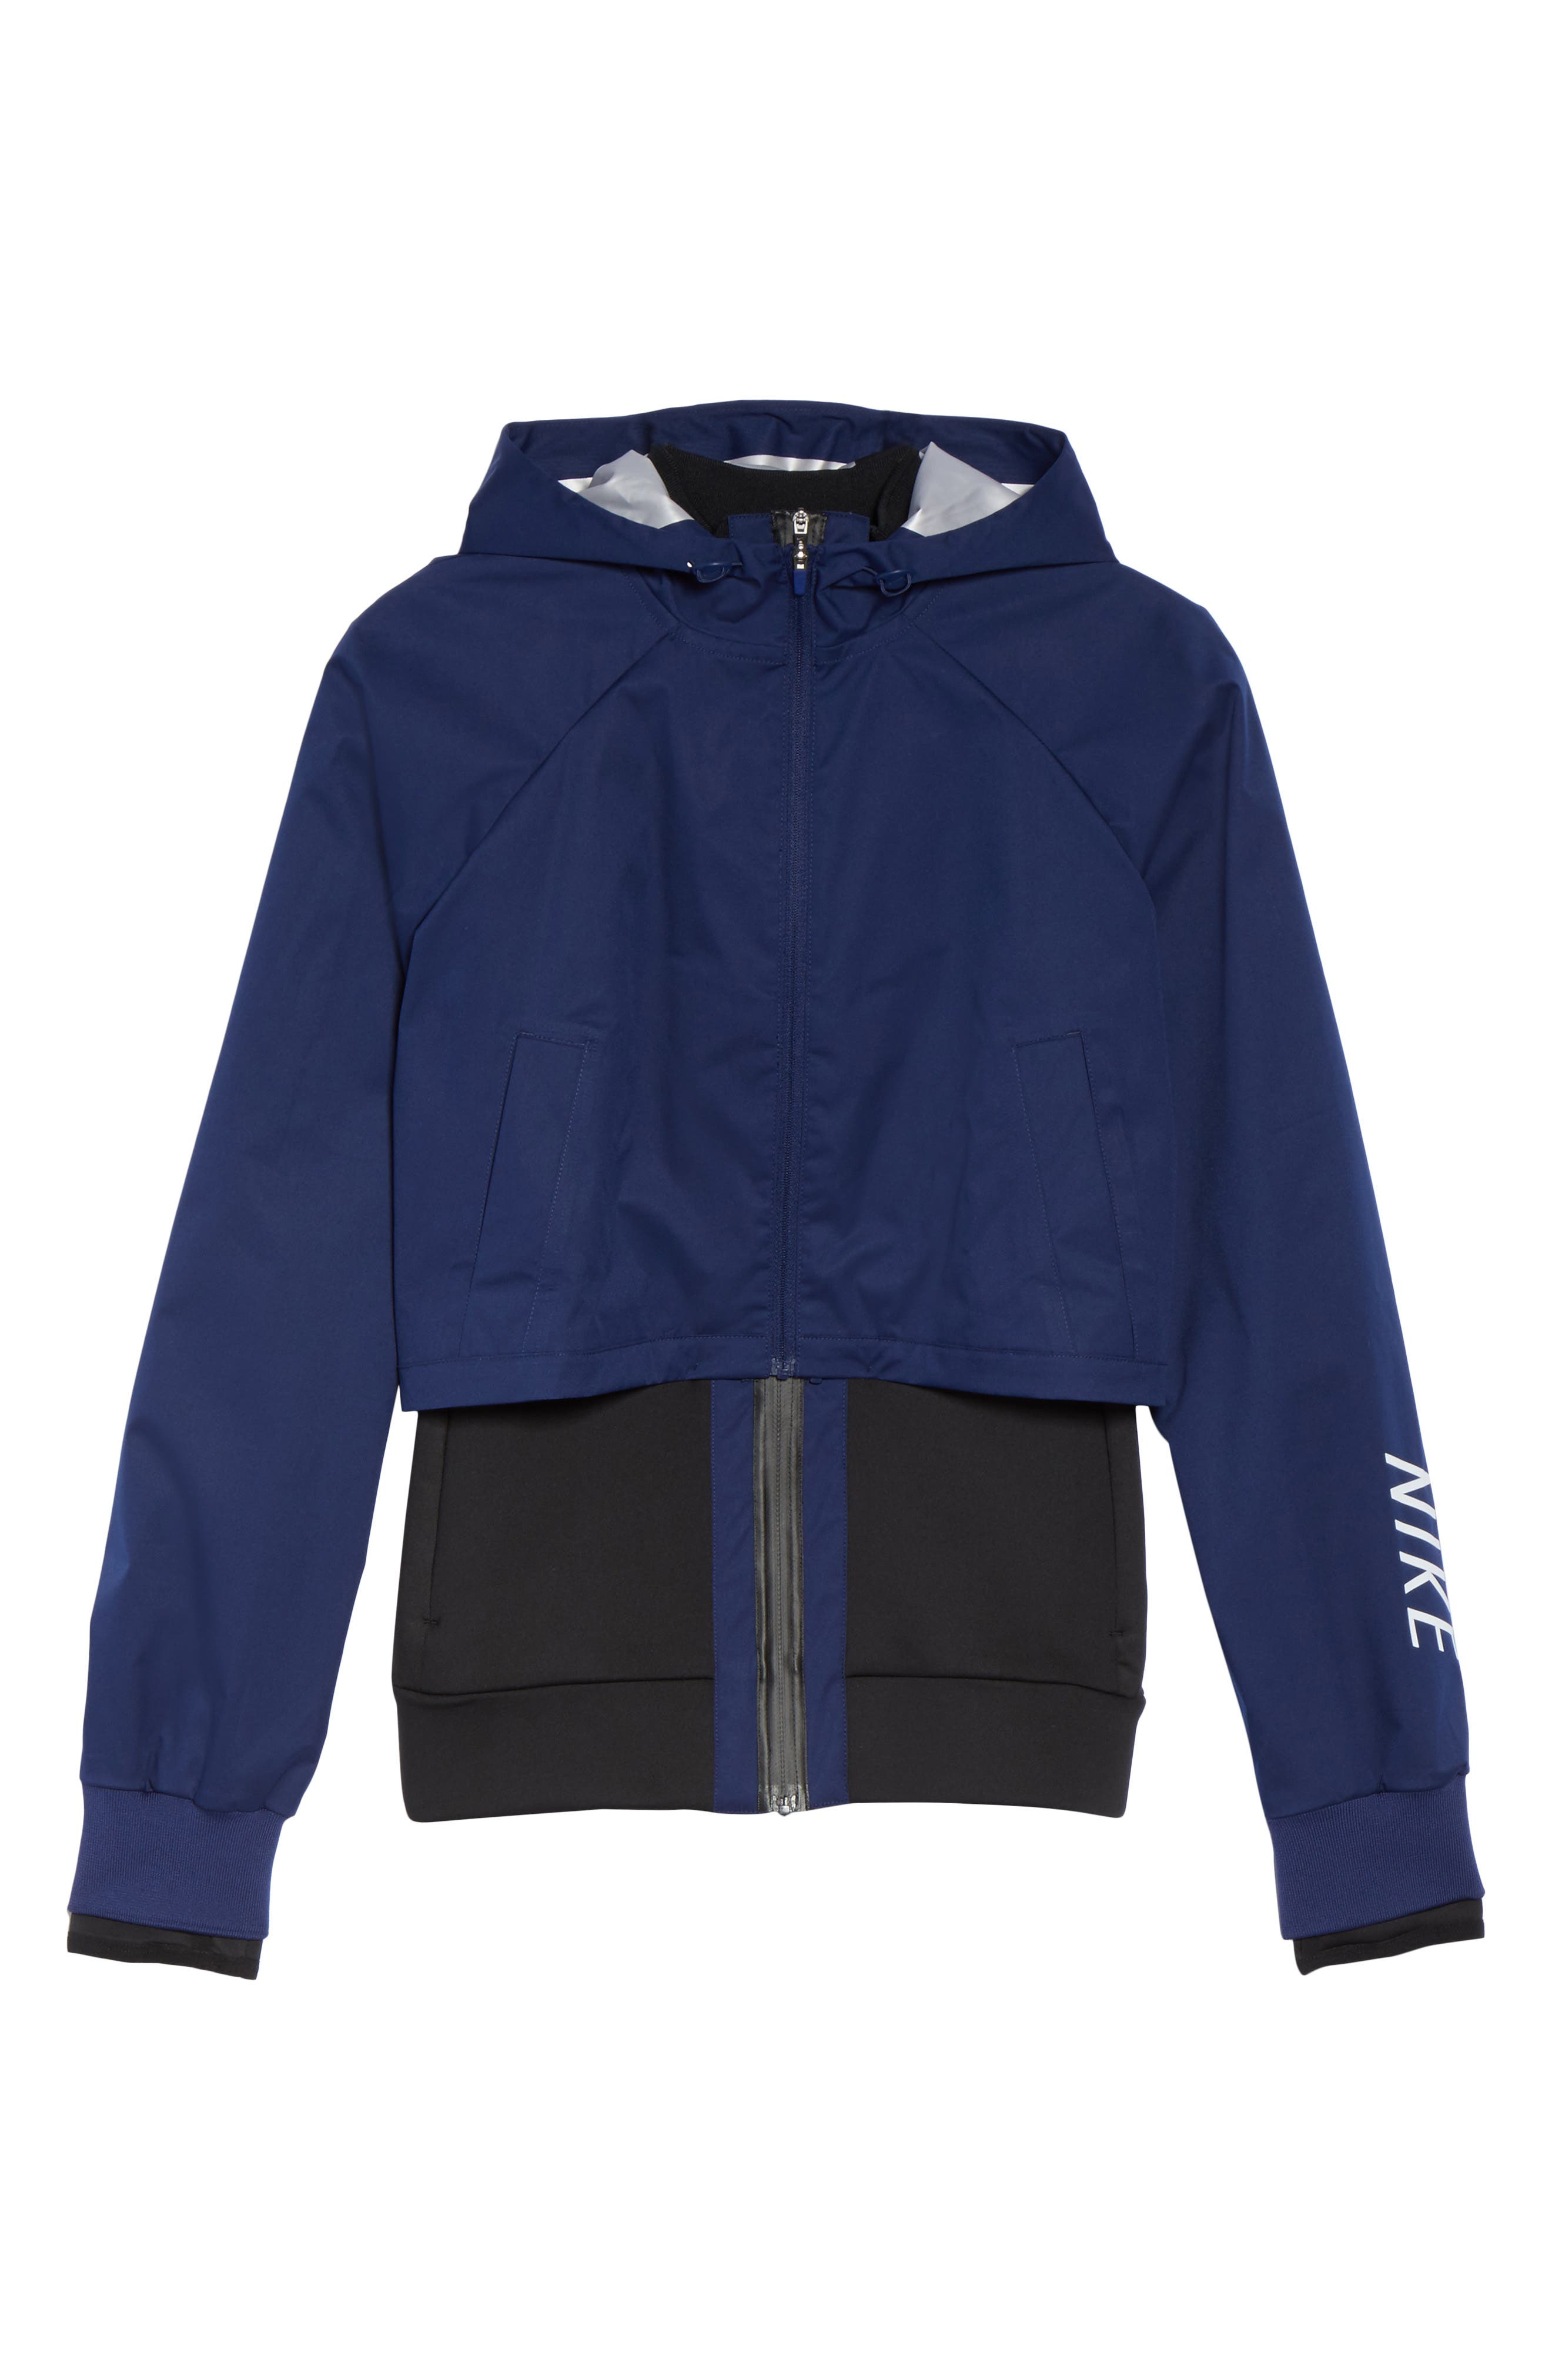 Therma Shield 2-in-1 Training Jacket,                             Alternate thumbnail 6, color,                             Binary Blue/ Black/ White